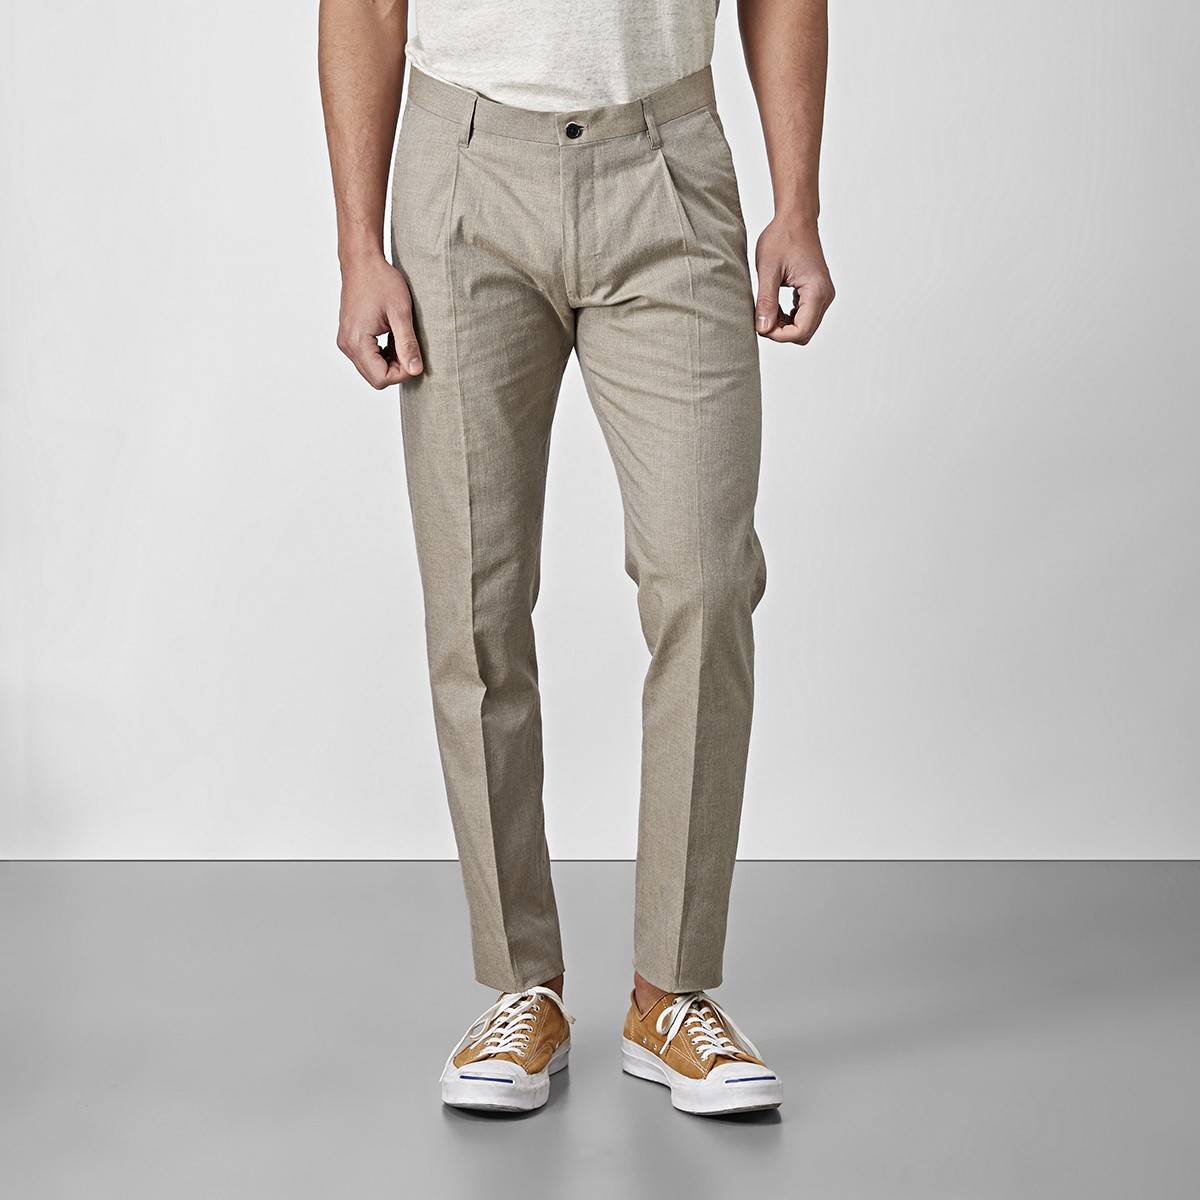 Bramley Bomullsbyxa Beige | The Tailoring Club |Brothers.se